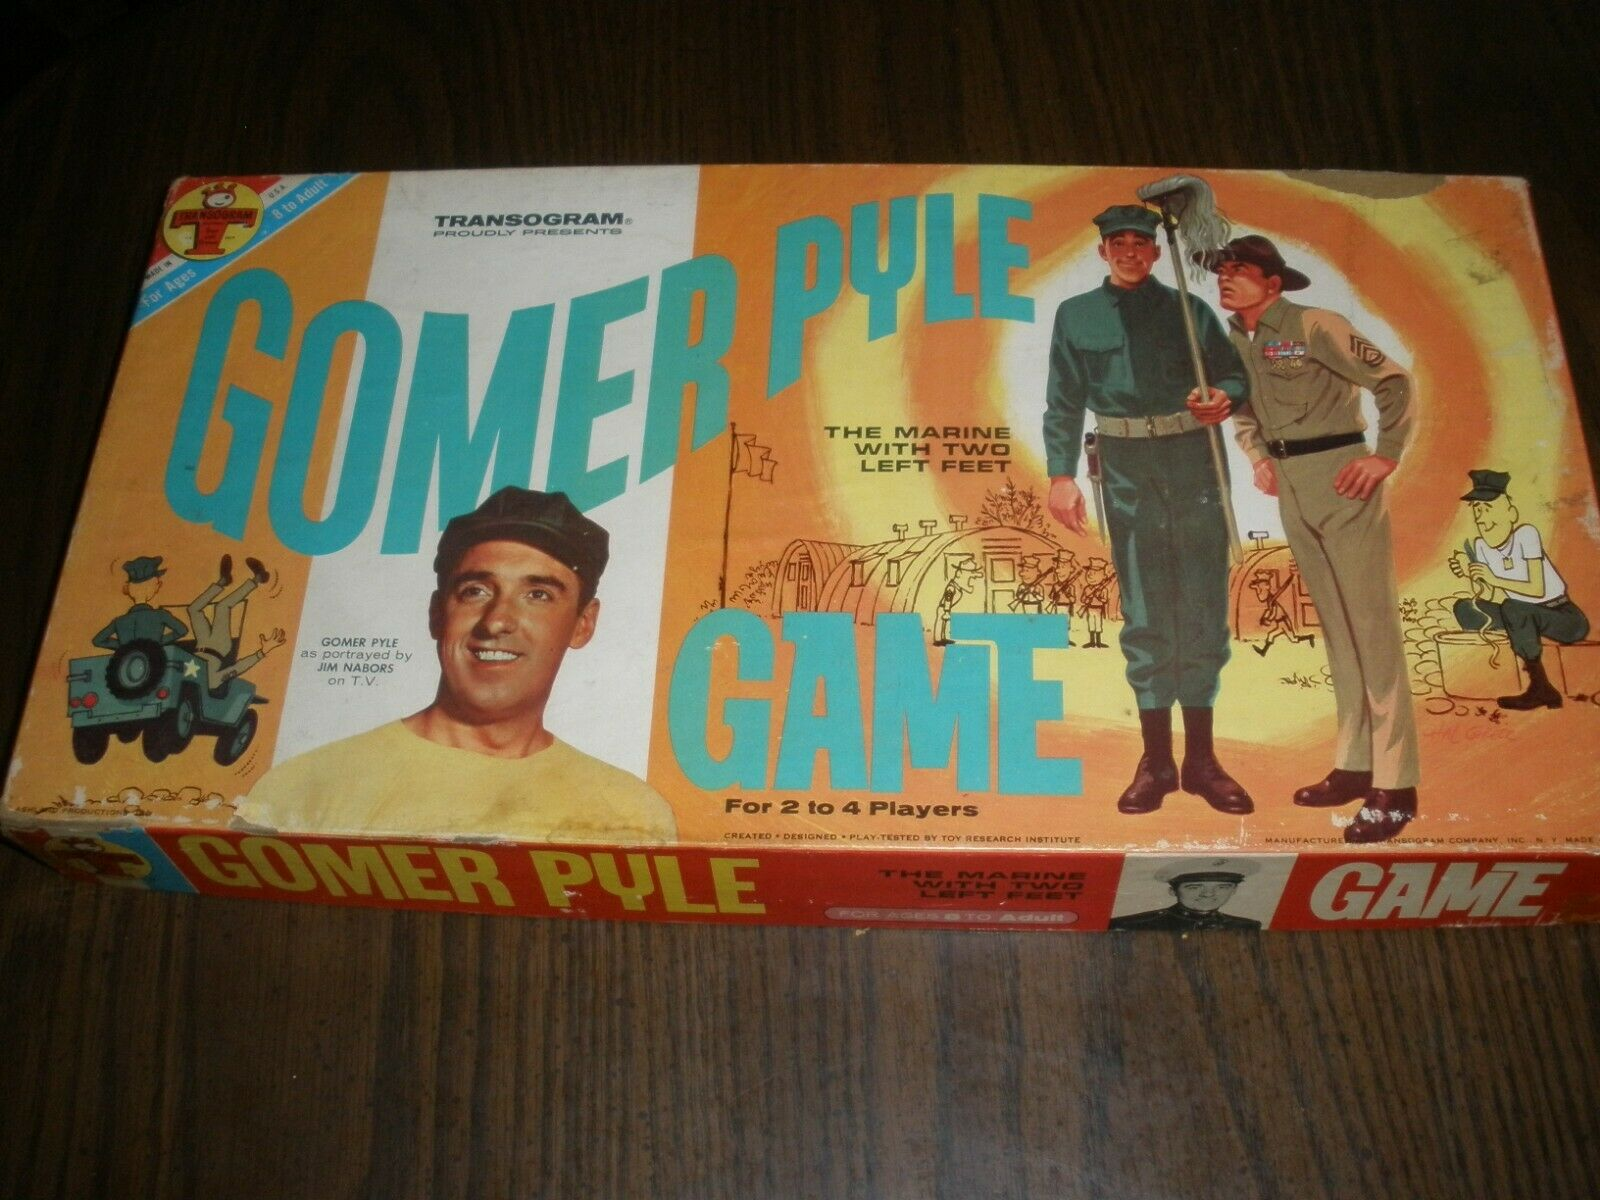 GOMER PYLE MARINE WITH TWO LEFT FEET BOARD GAME COMPLETE 1964